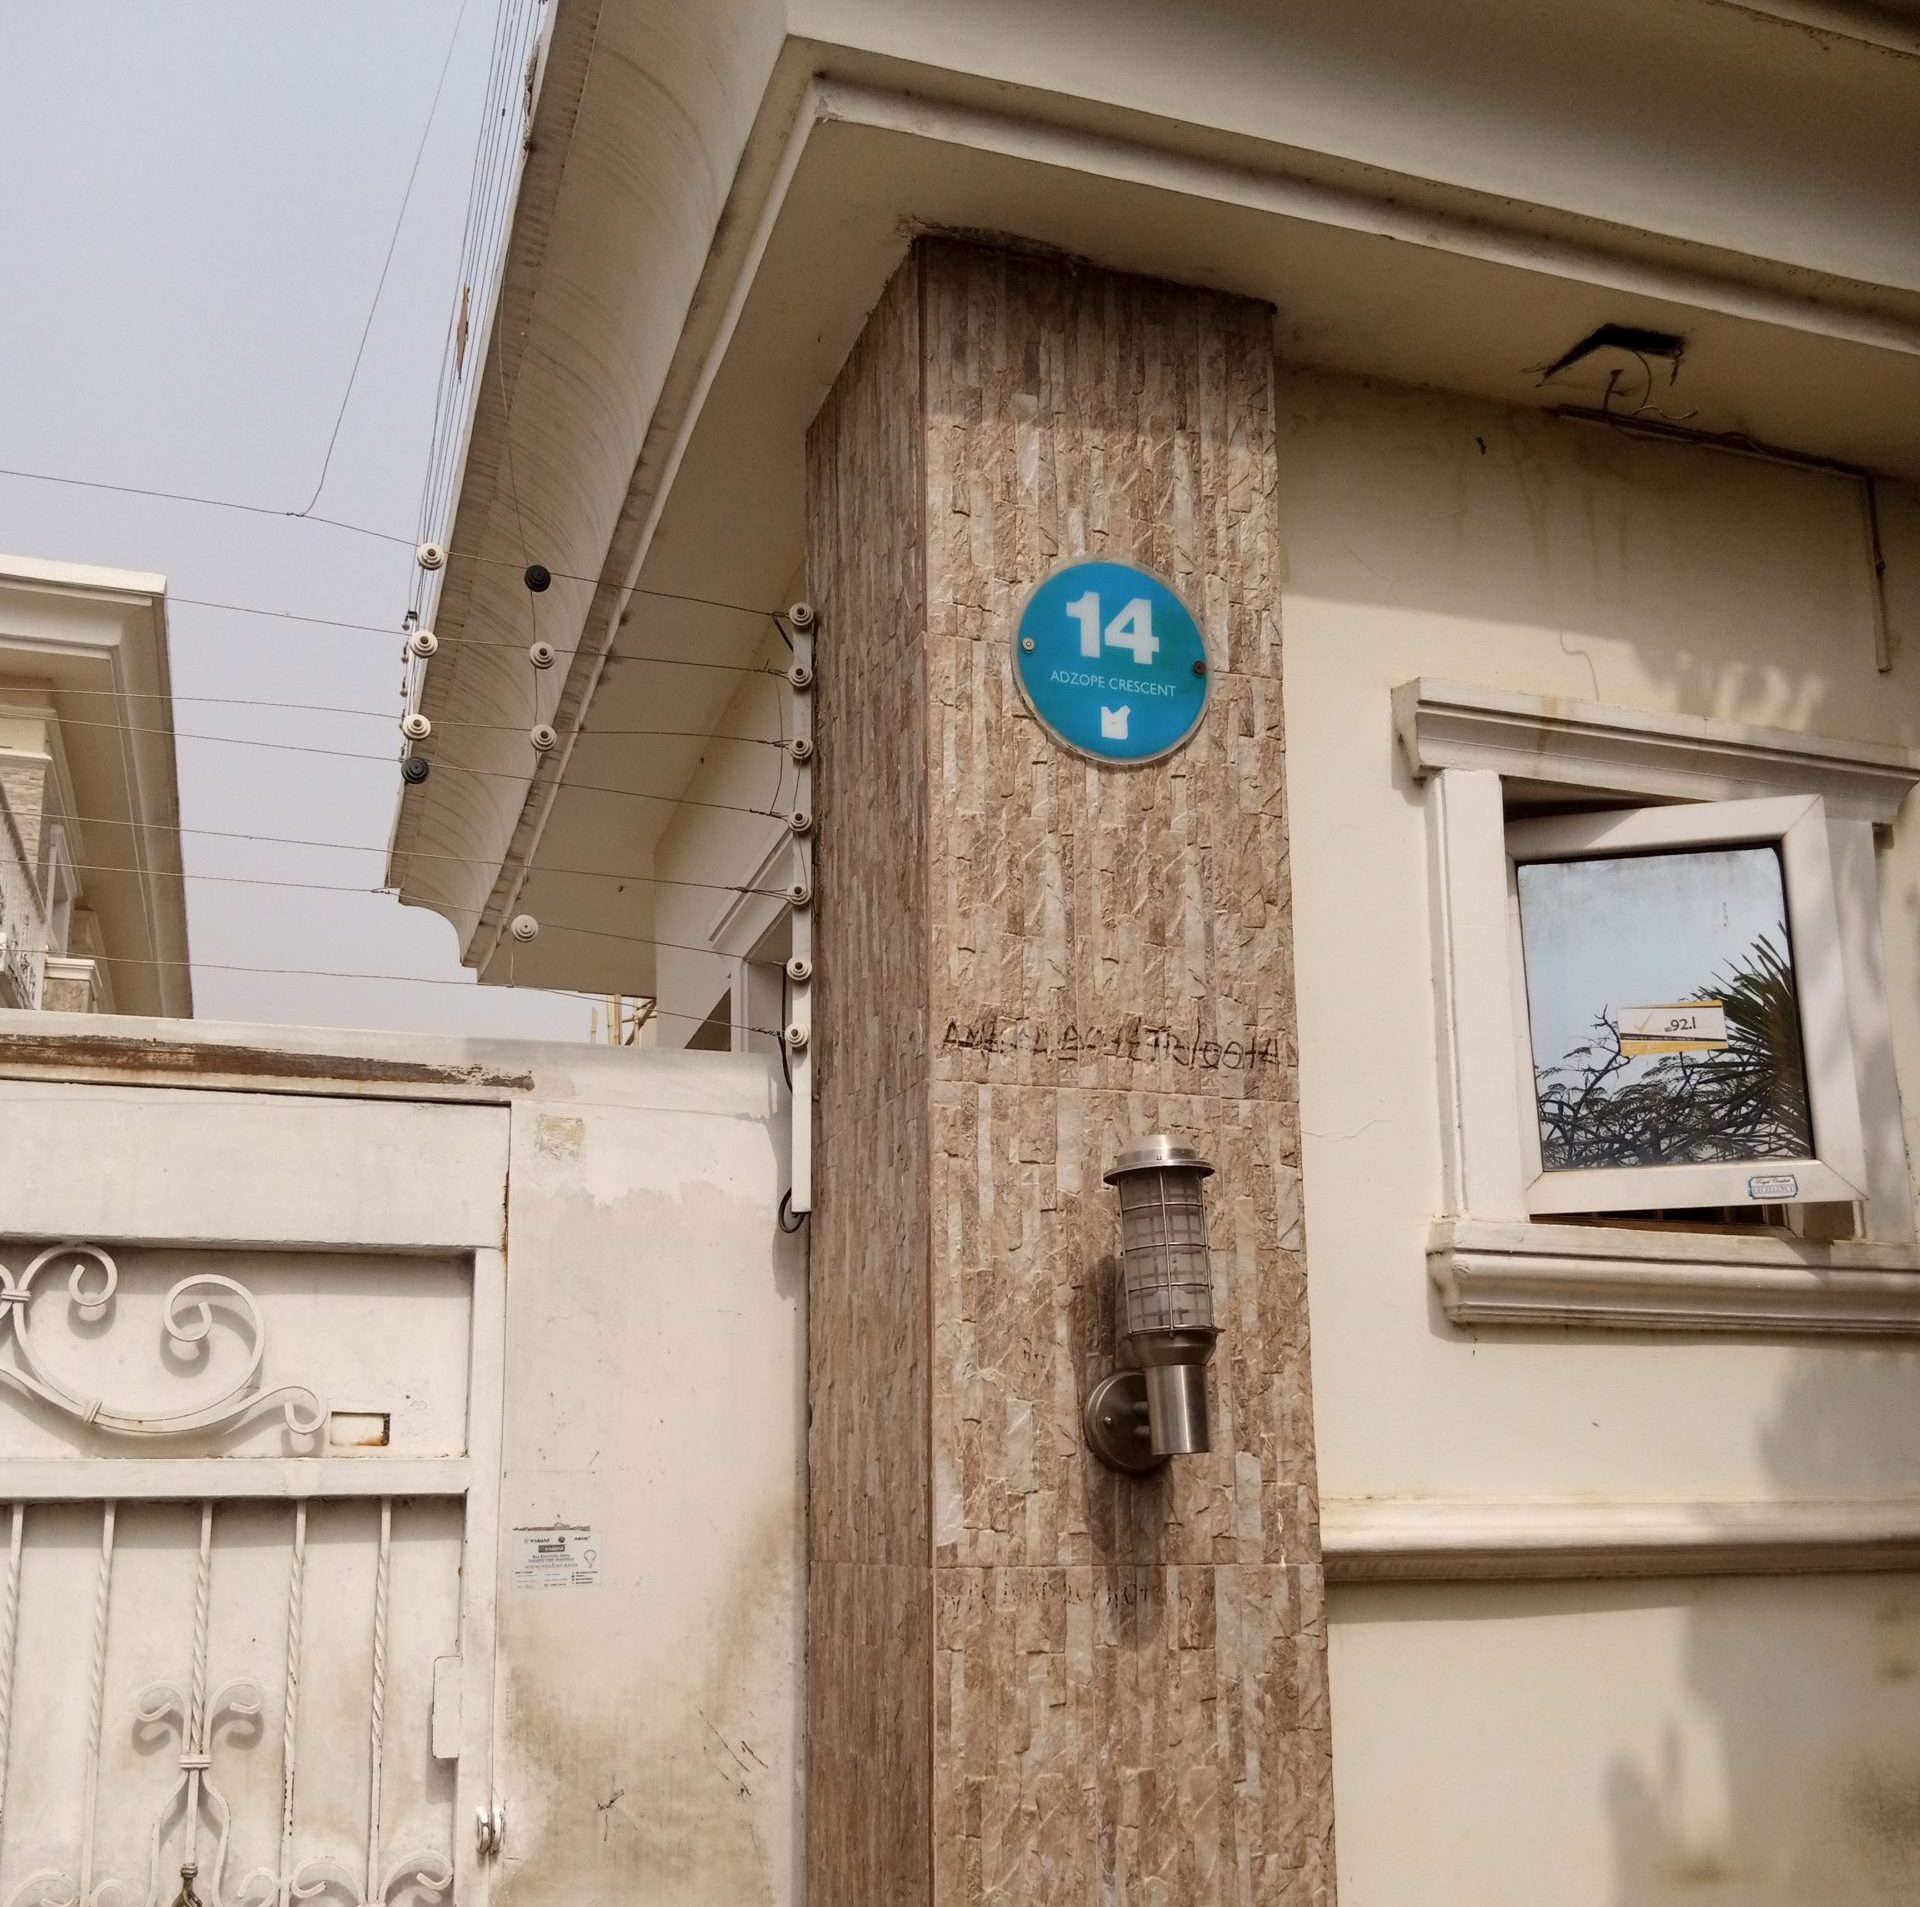 14 Adzope Crescent, Wuse II,was forfeited by Mr Badeh